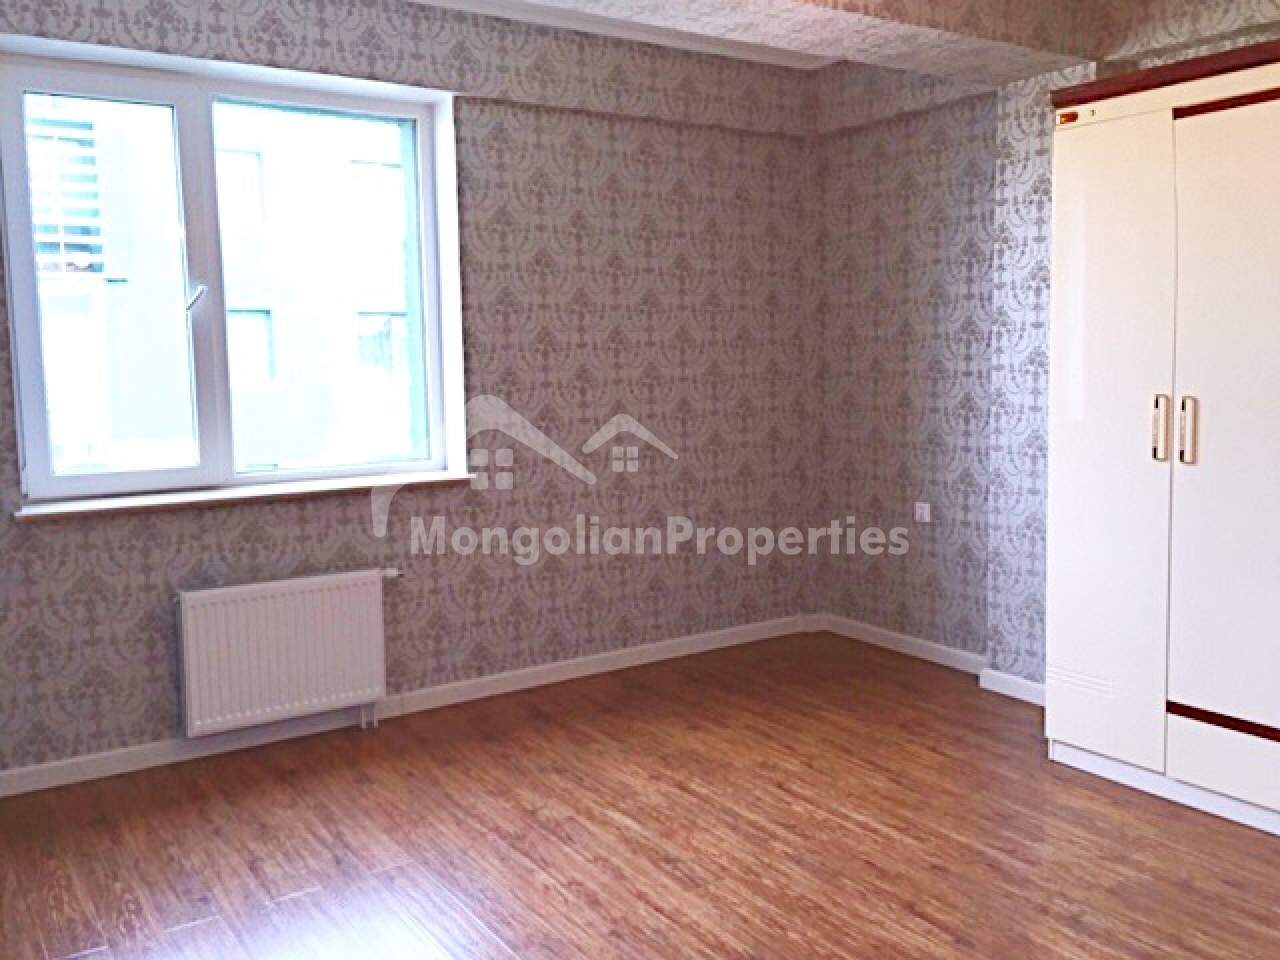 2 bedroom apartment in Bayanzurkh district  right behind the National Park. FOR RENT  2 bedroom apartment in Parkside residence for reasonable